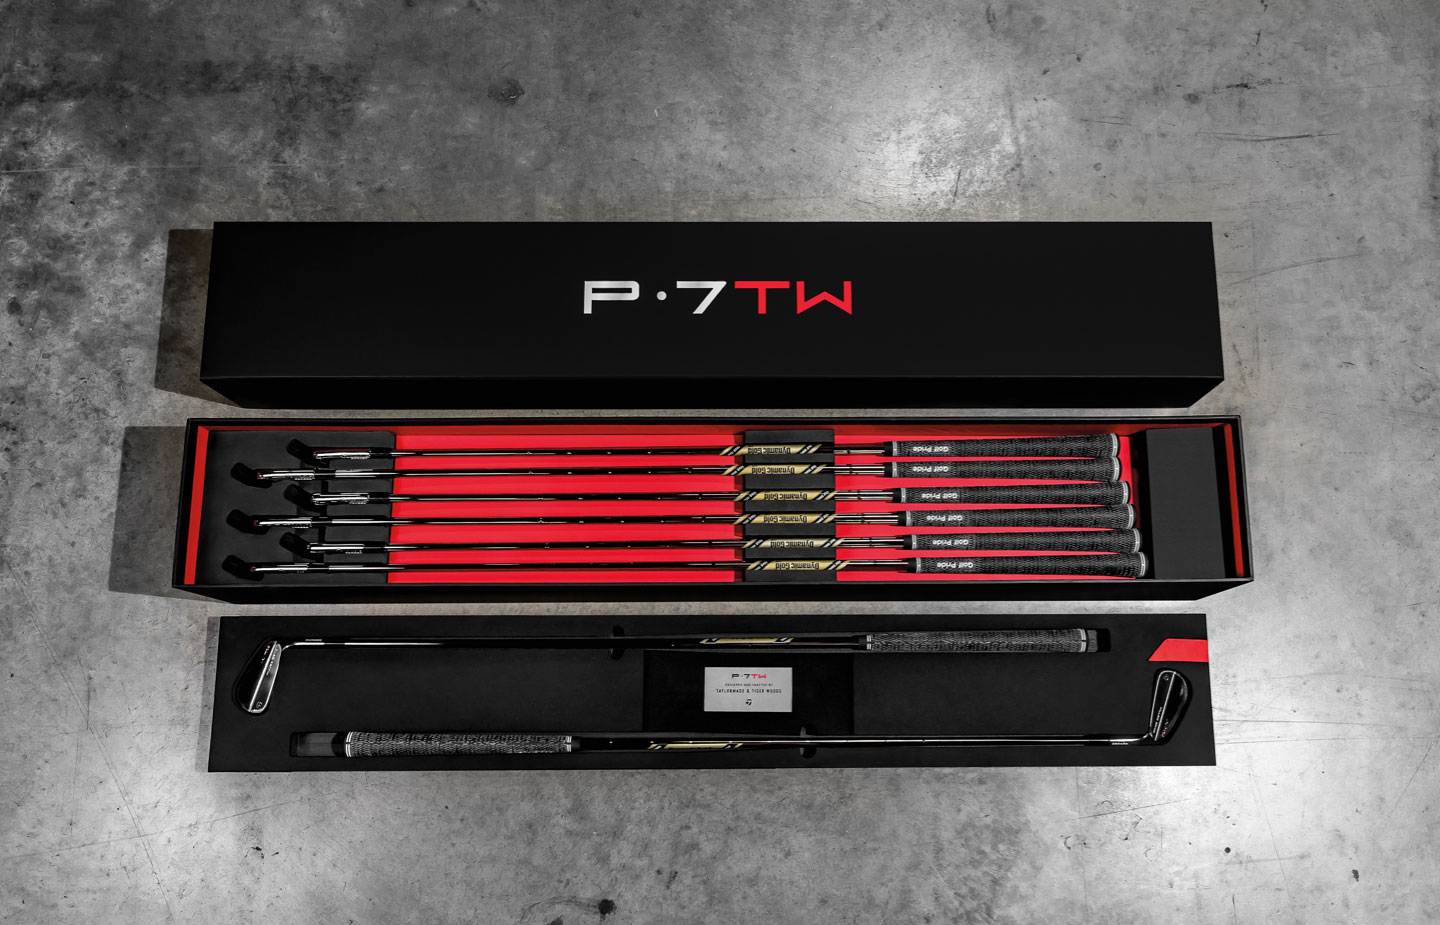 P7TW packaging